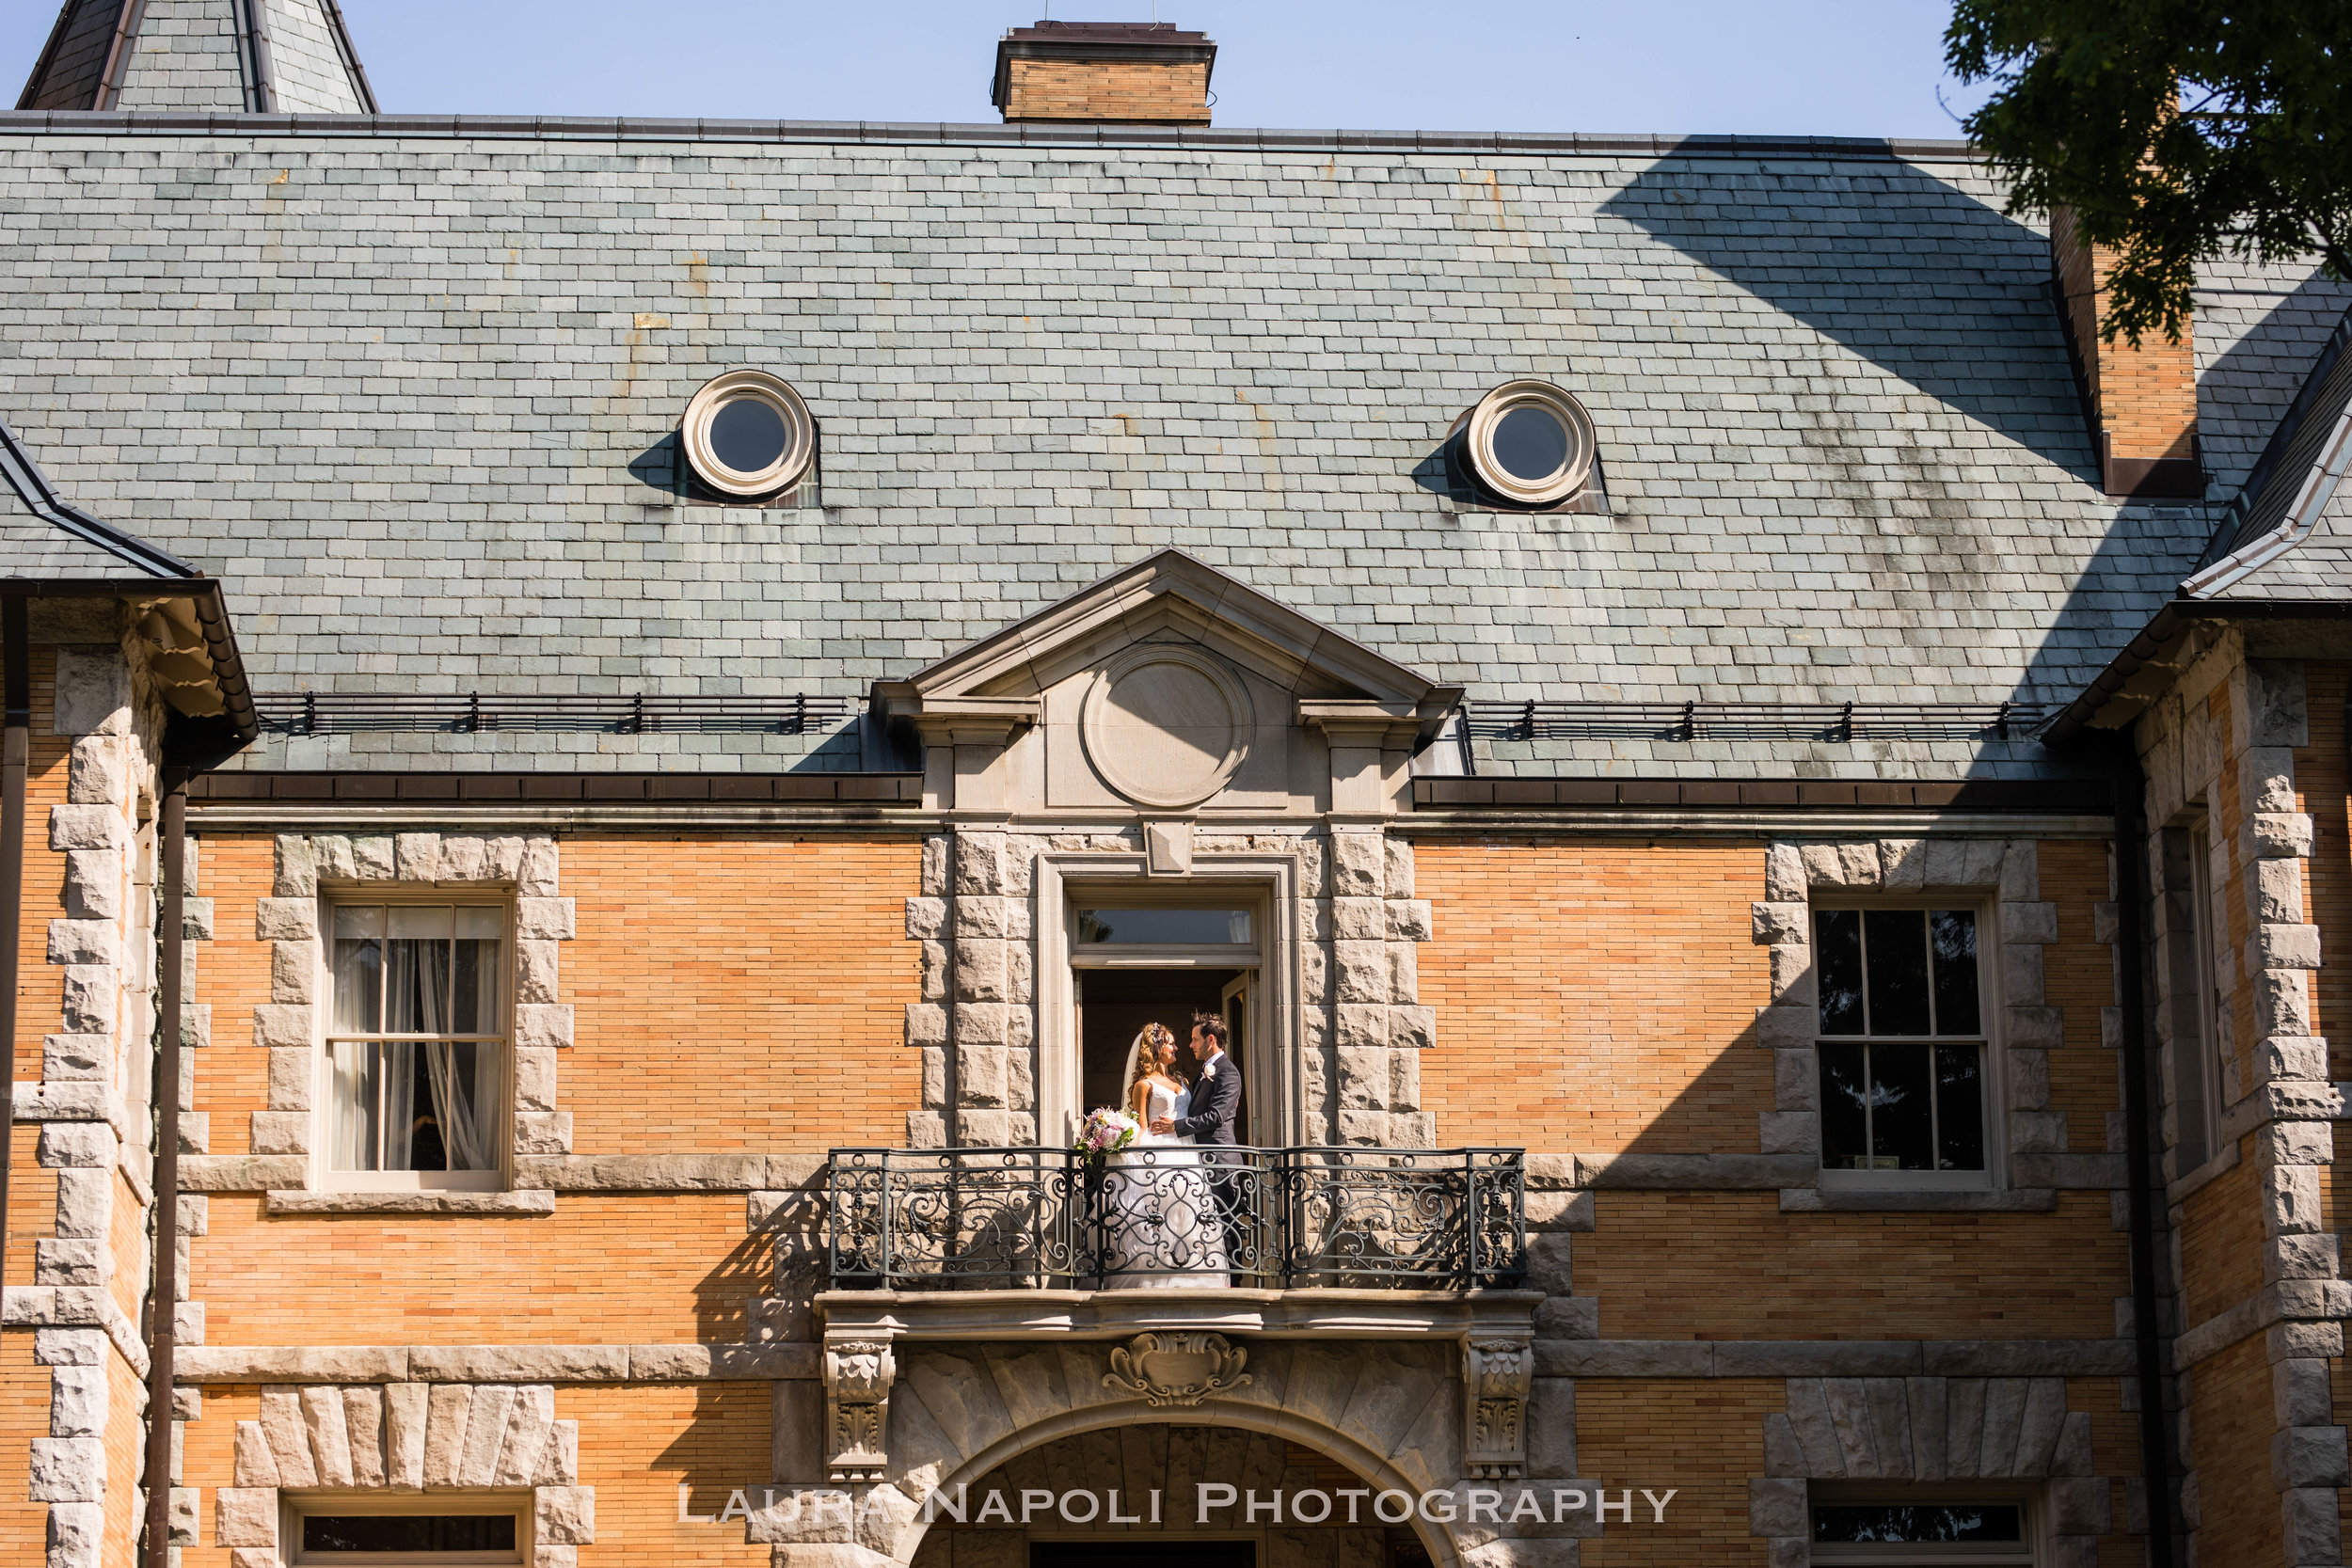 cairnwoodestateweddingsalvagedrentalsbrynathenpaweddingphotographer-13.jpg